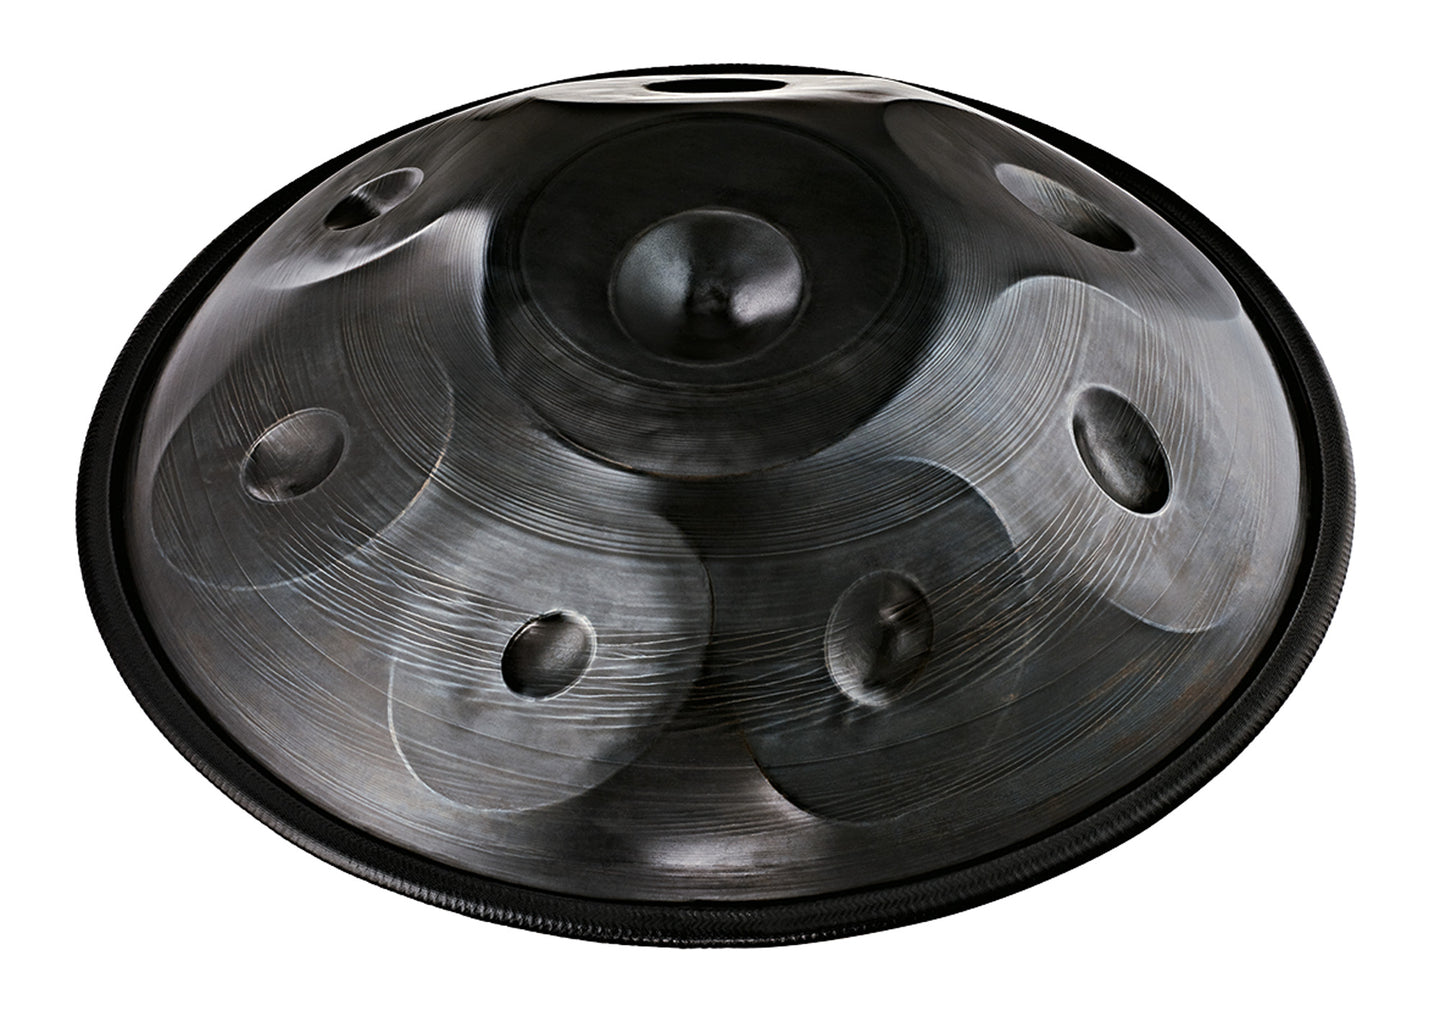 HANDPAN MEINL SONIC ENERGY ART HANDPAN HD5